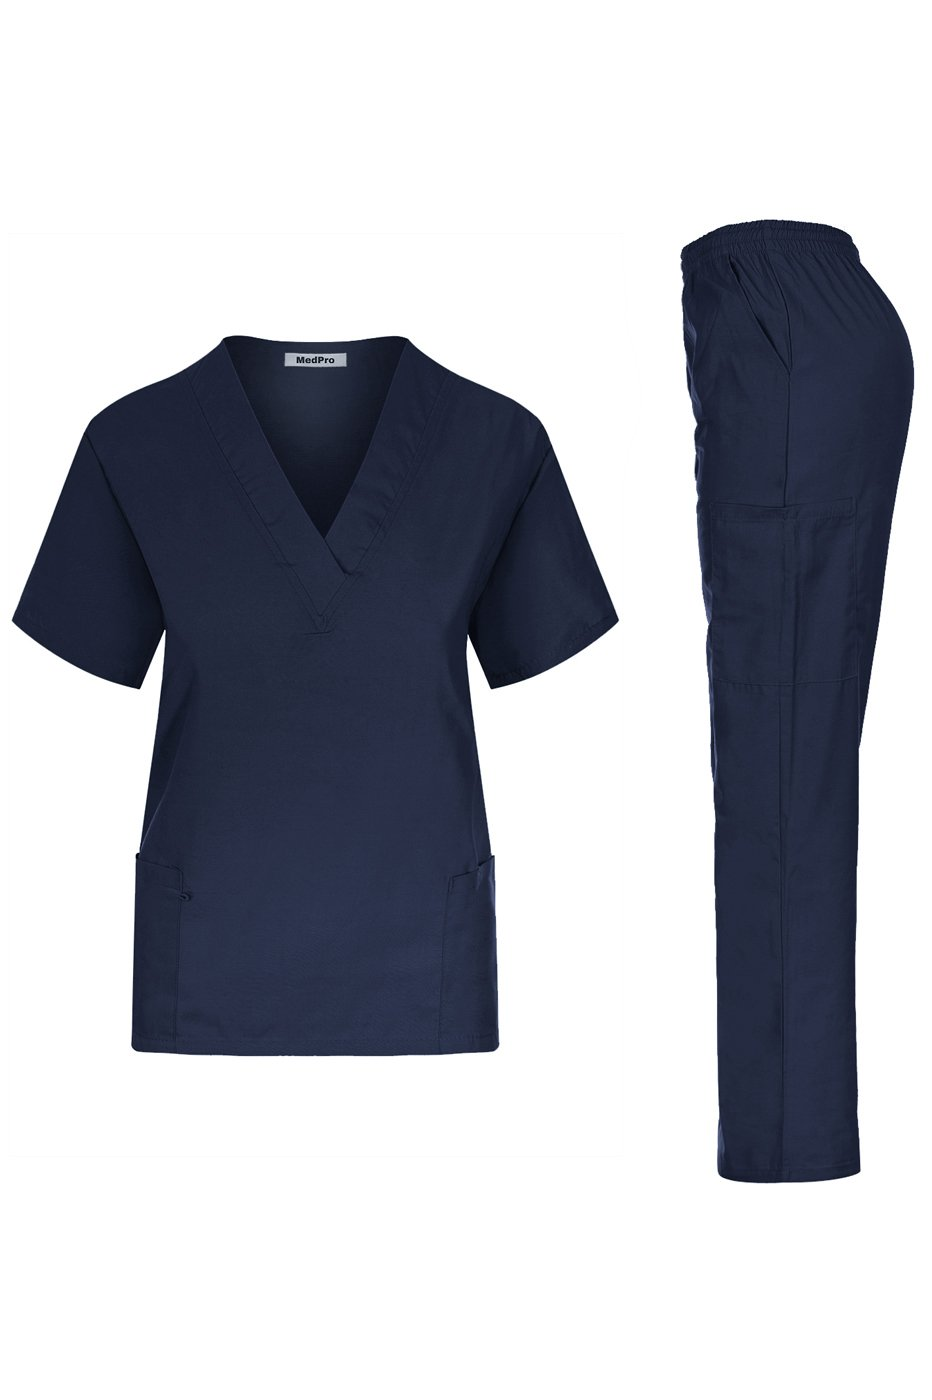 MedPro Women's Unisex Solid Medical Scrub Set V-Neck Top and Cargo Pants Navy L (GT-766)